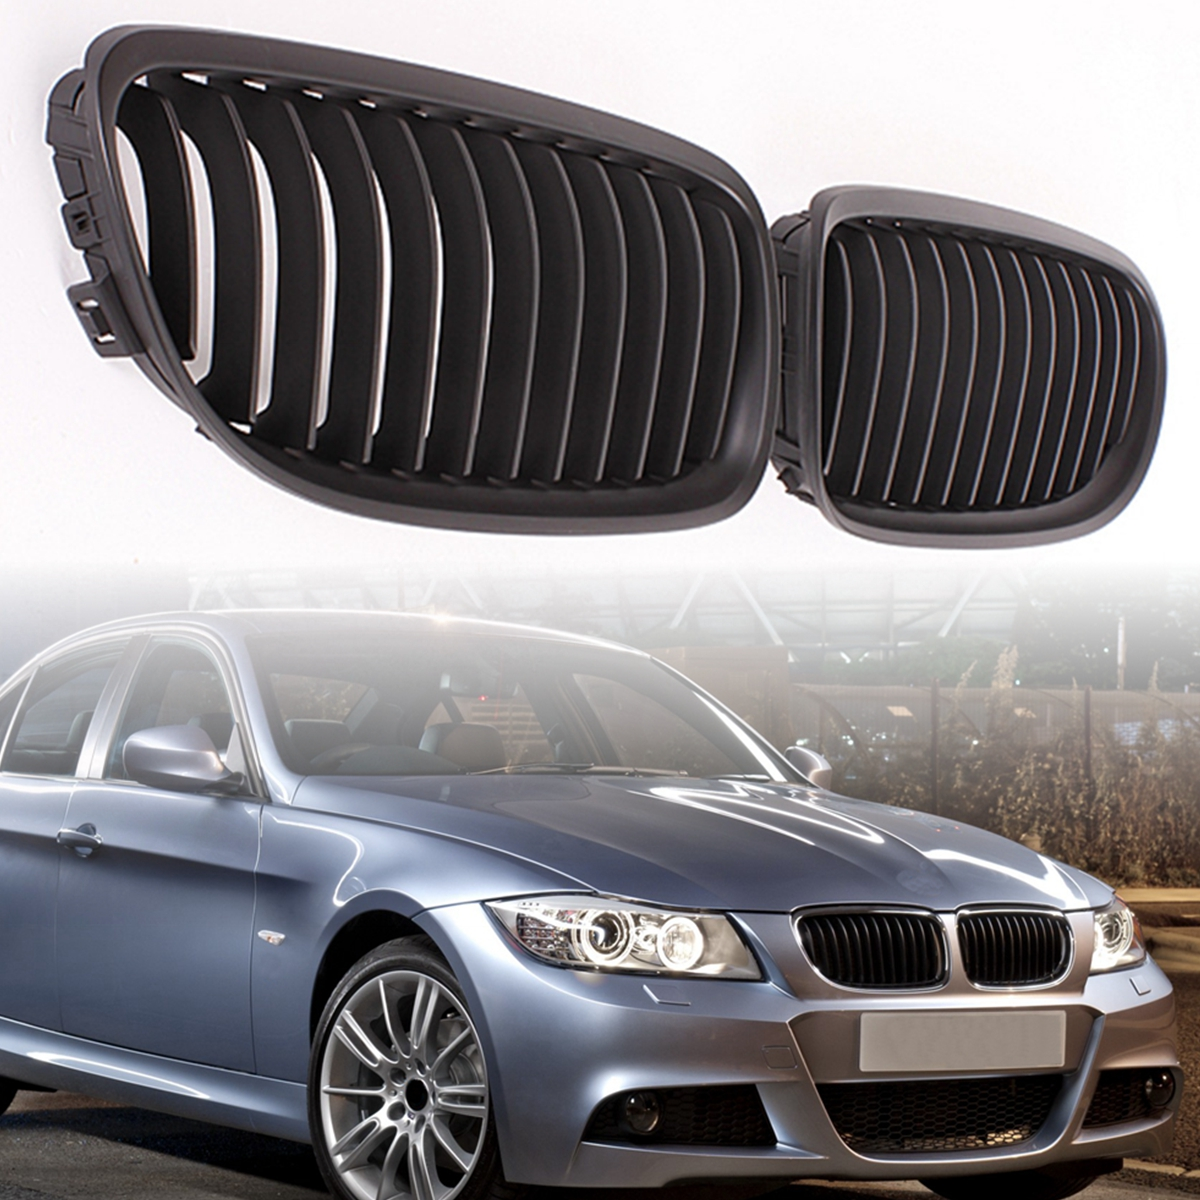 Image 2 - Pair Matte/Gloss Black Car Front Grille For BMW E90 LCI 3 Series Sedan/Wagon 09 11 Racing Grills-in Racing Grills from Automobiles & Motorcycles